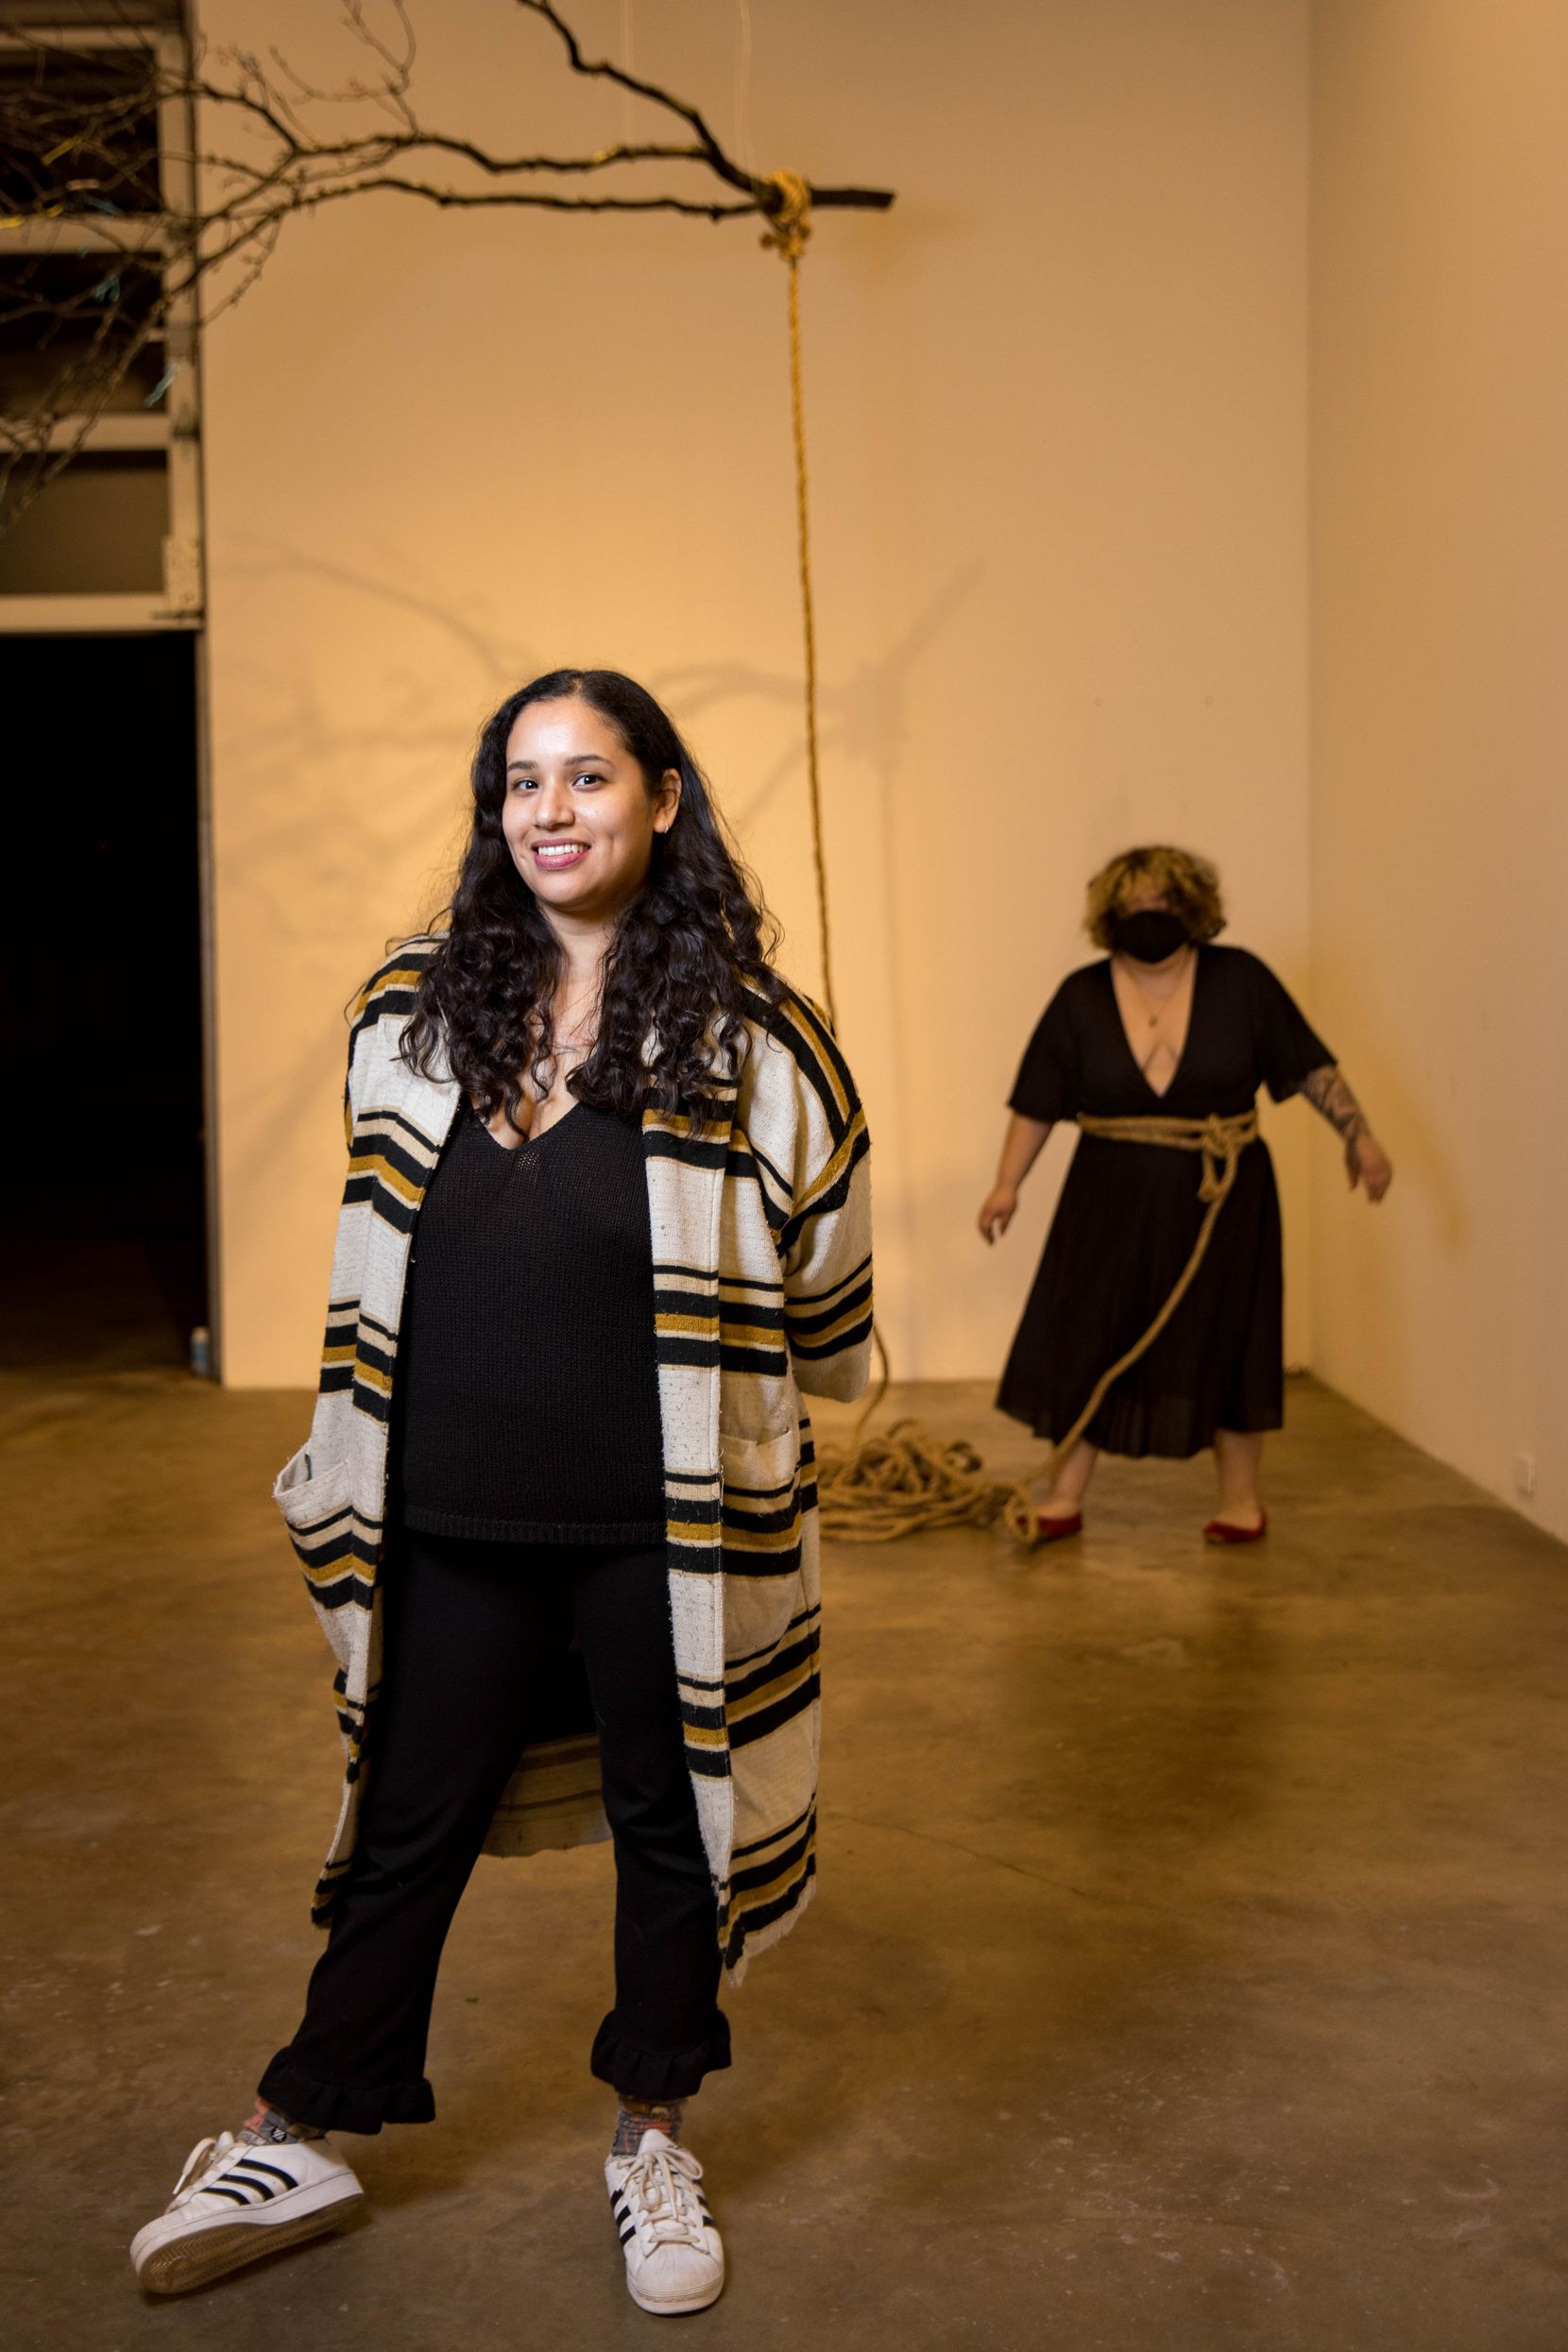 Dallas artist Christian Cruz poses for a photo in front of her piece, 'Piñata Dance' performed by Amy Zapien, at Ex-Ovo in Dallas.